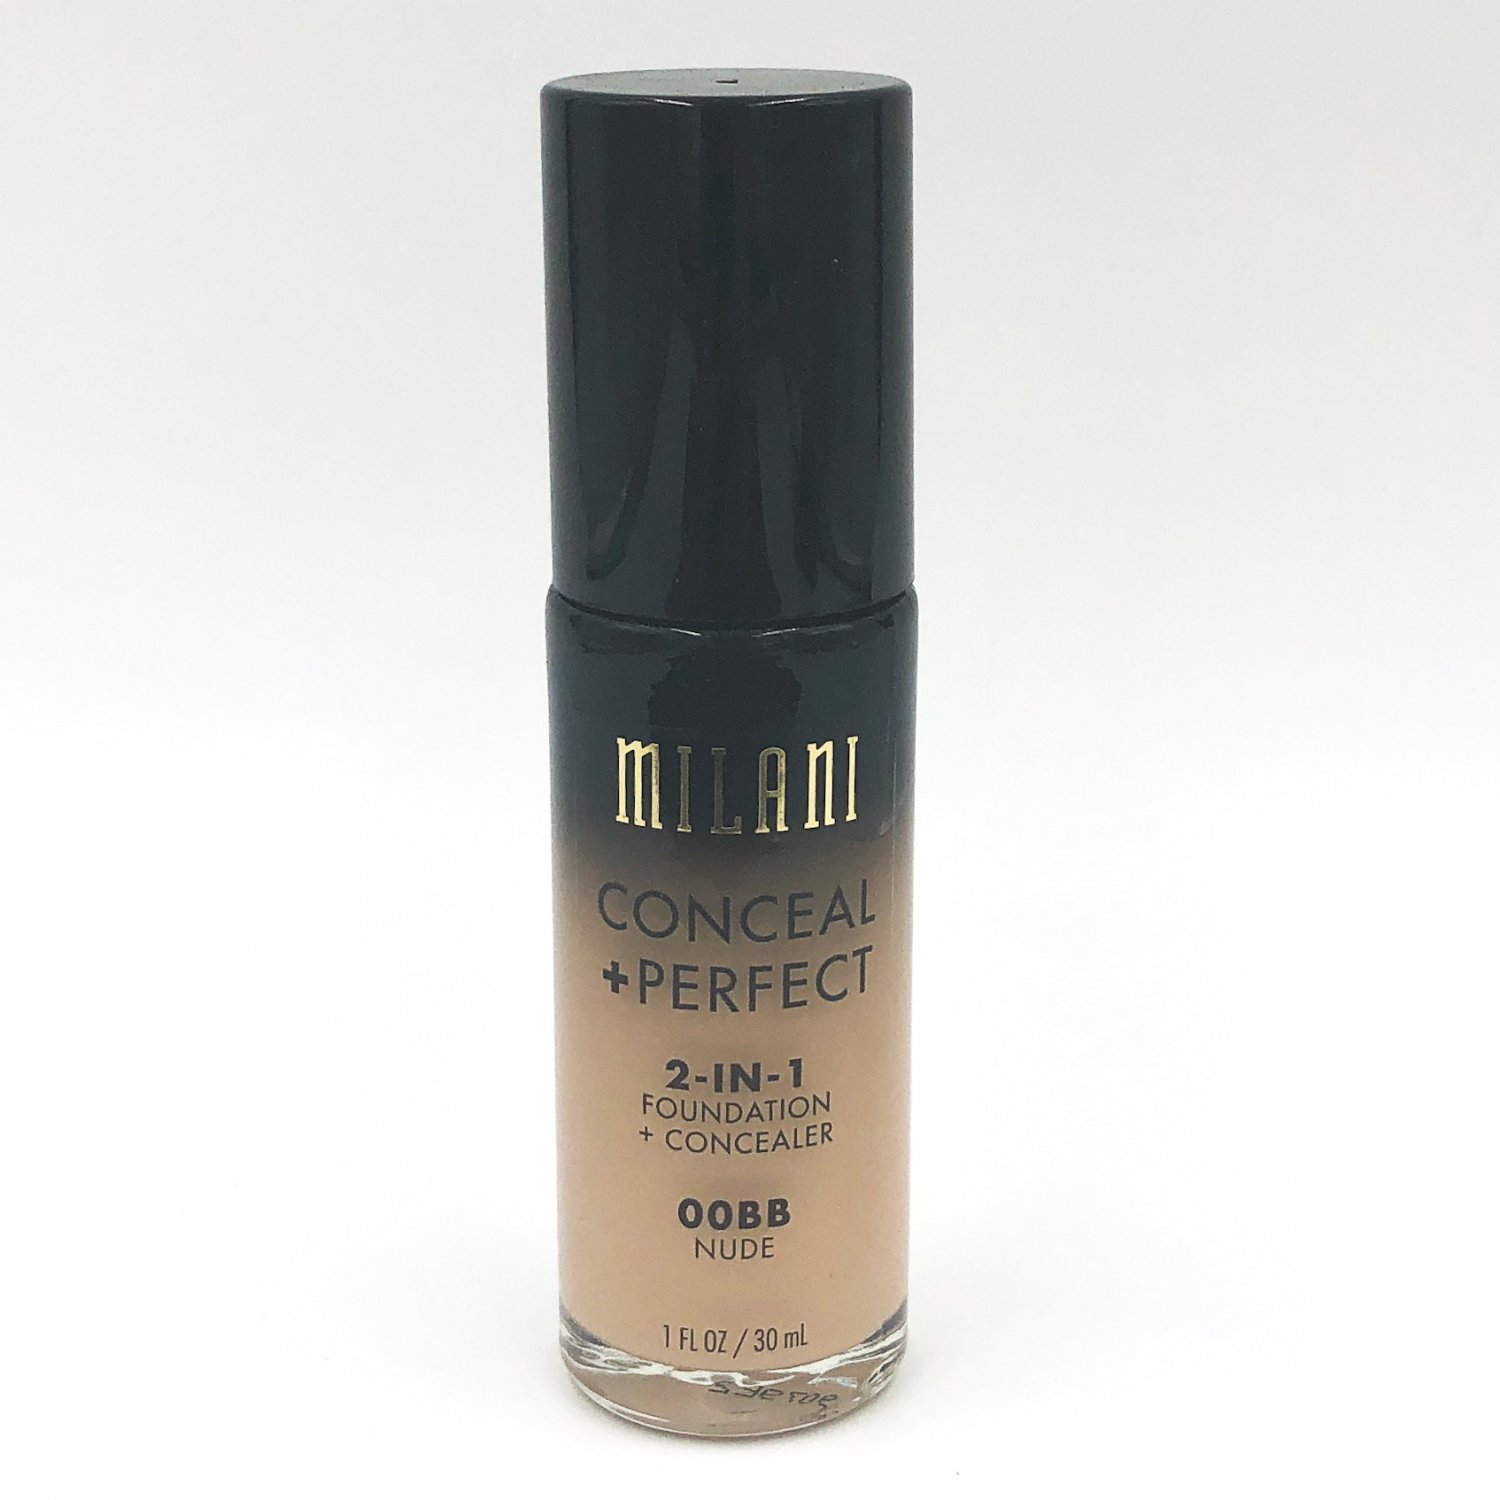 Milani Conceal + Perfect 2-in-1 Foundation + Concealer 00BB Nude